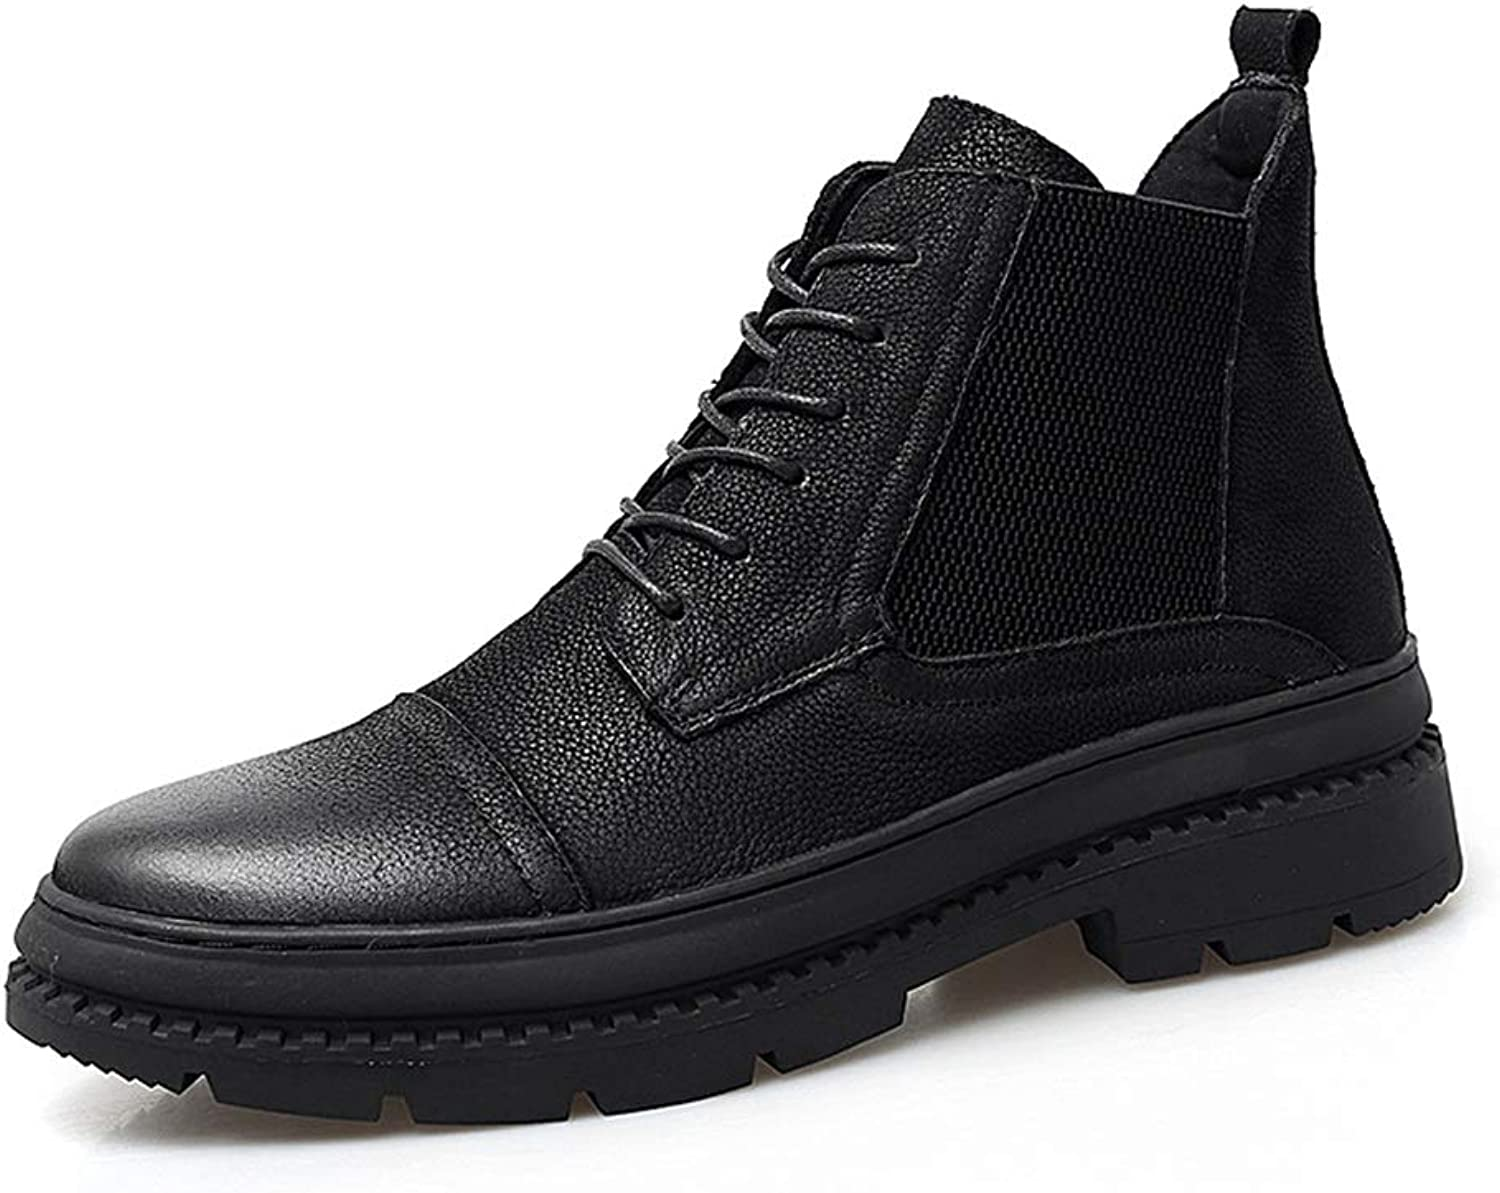 2018 New Mens boots, Men's Casual Fashion Boots Cowhide High-top Outdoor Outsole Boots (color   Black, Size   10 UK)